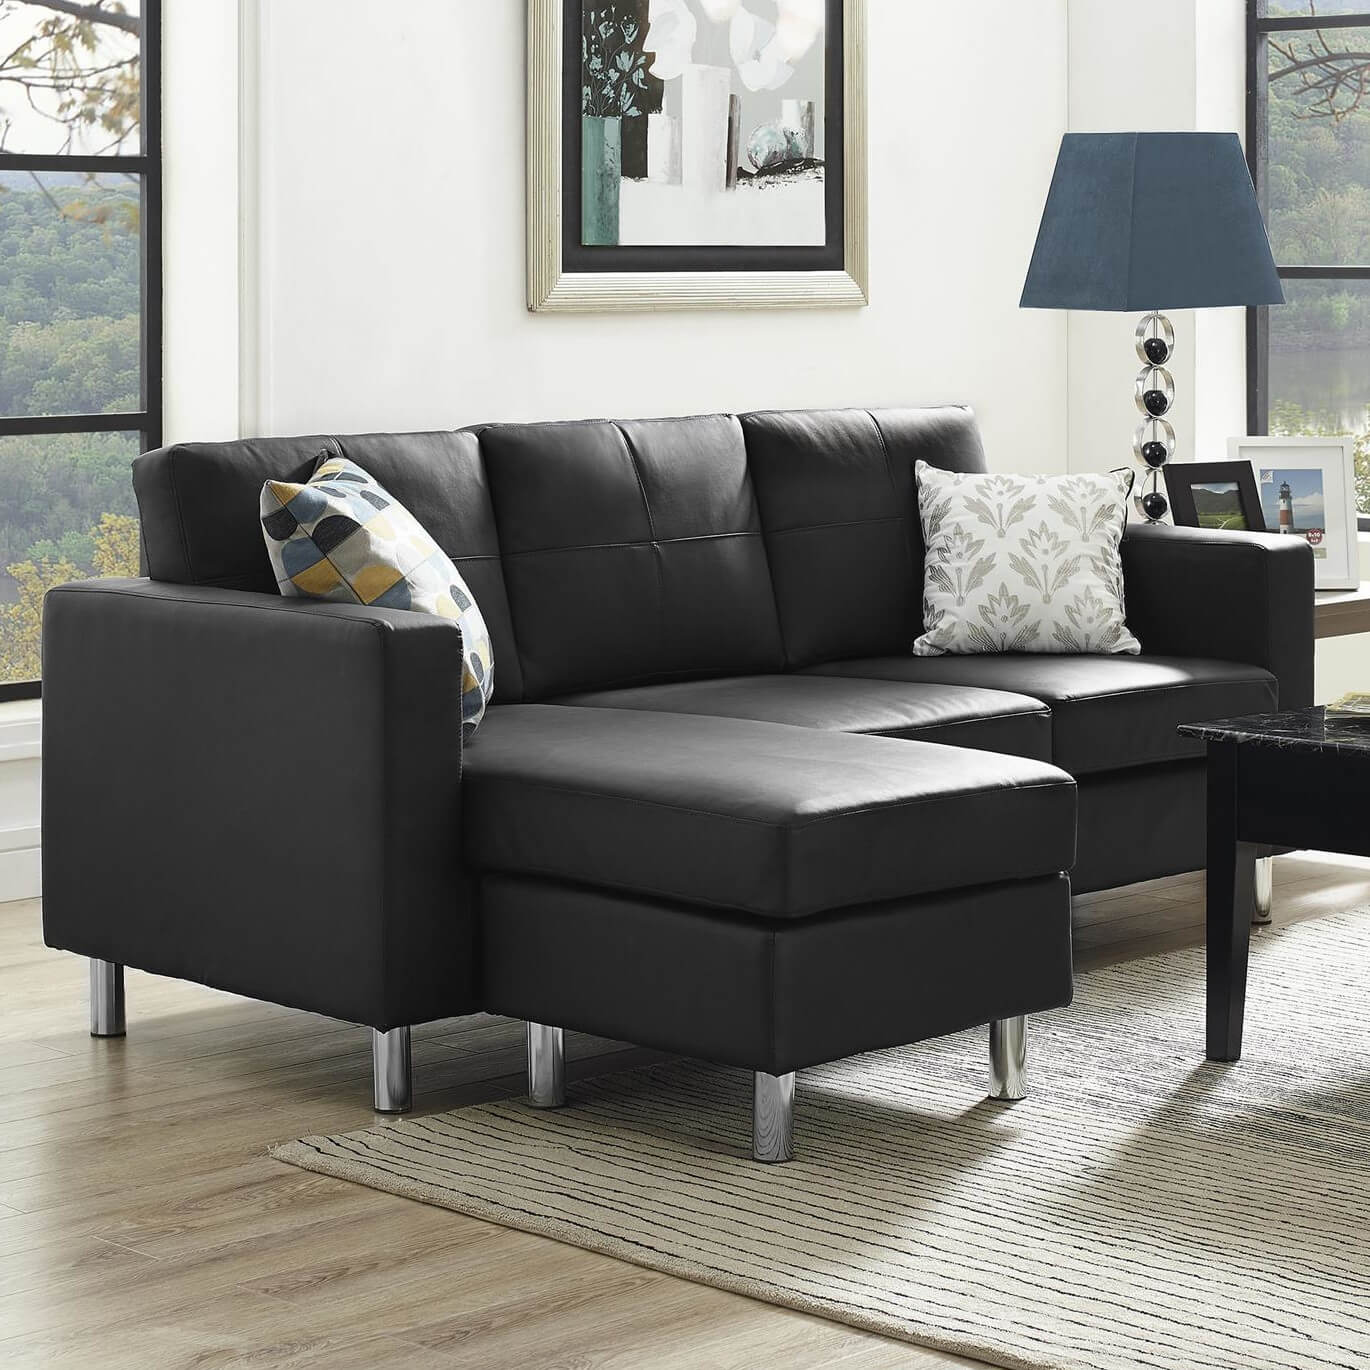 Picture of: 6 Types Of Small Sectional Sofas For Small Spaces